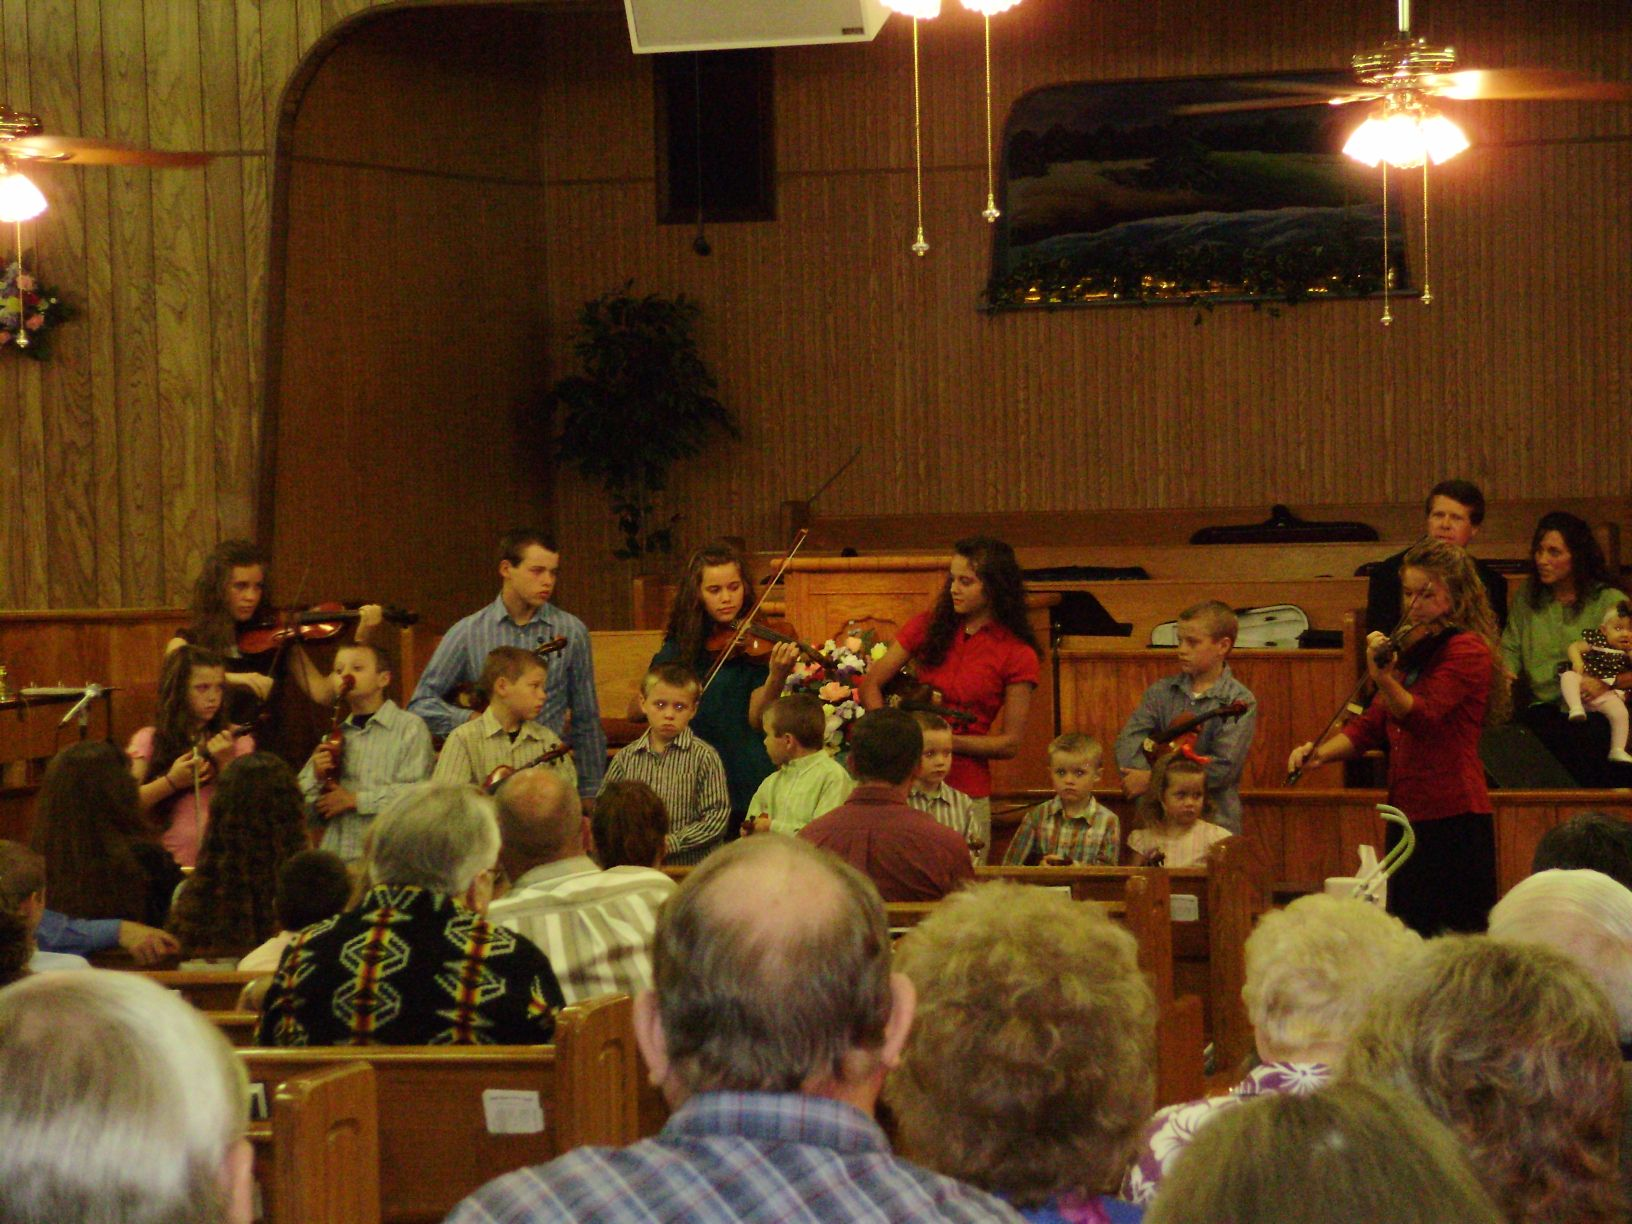 Duggar Children play their violins for the congregation